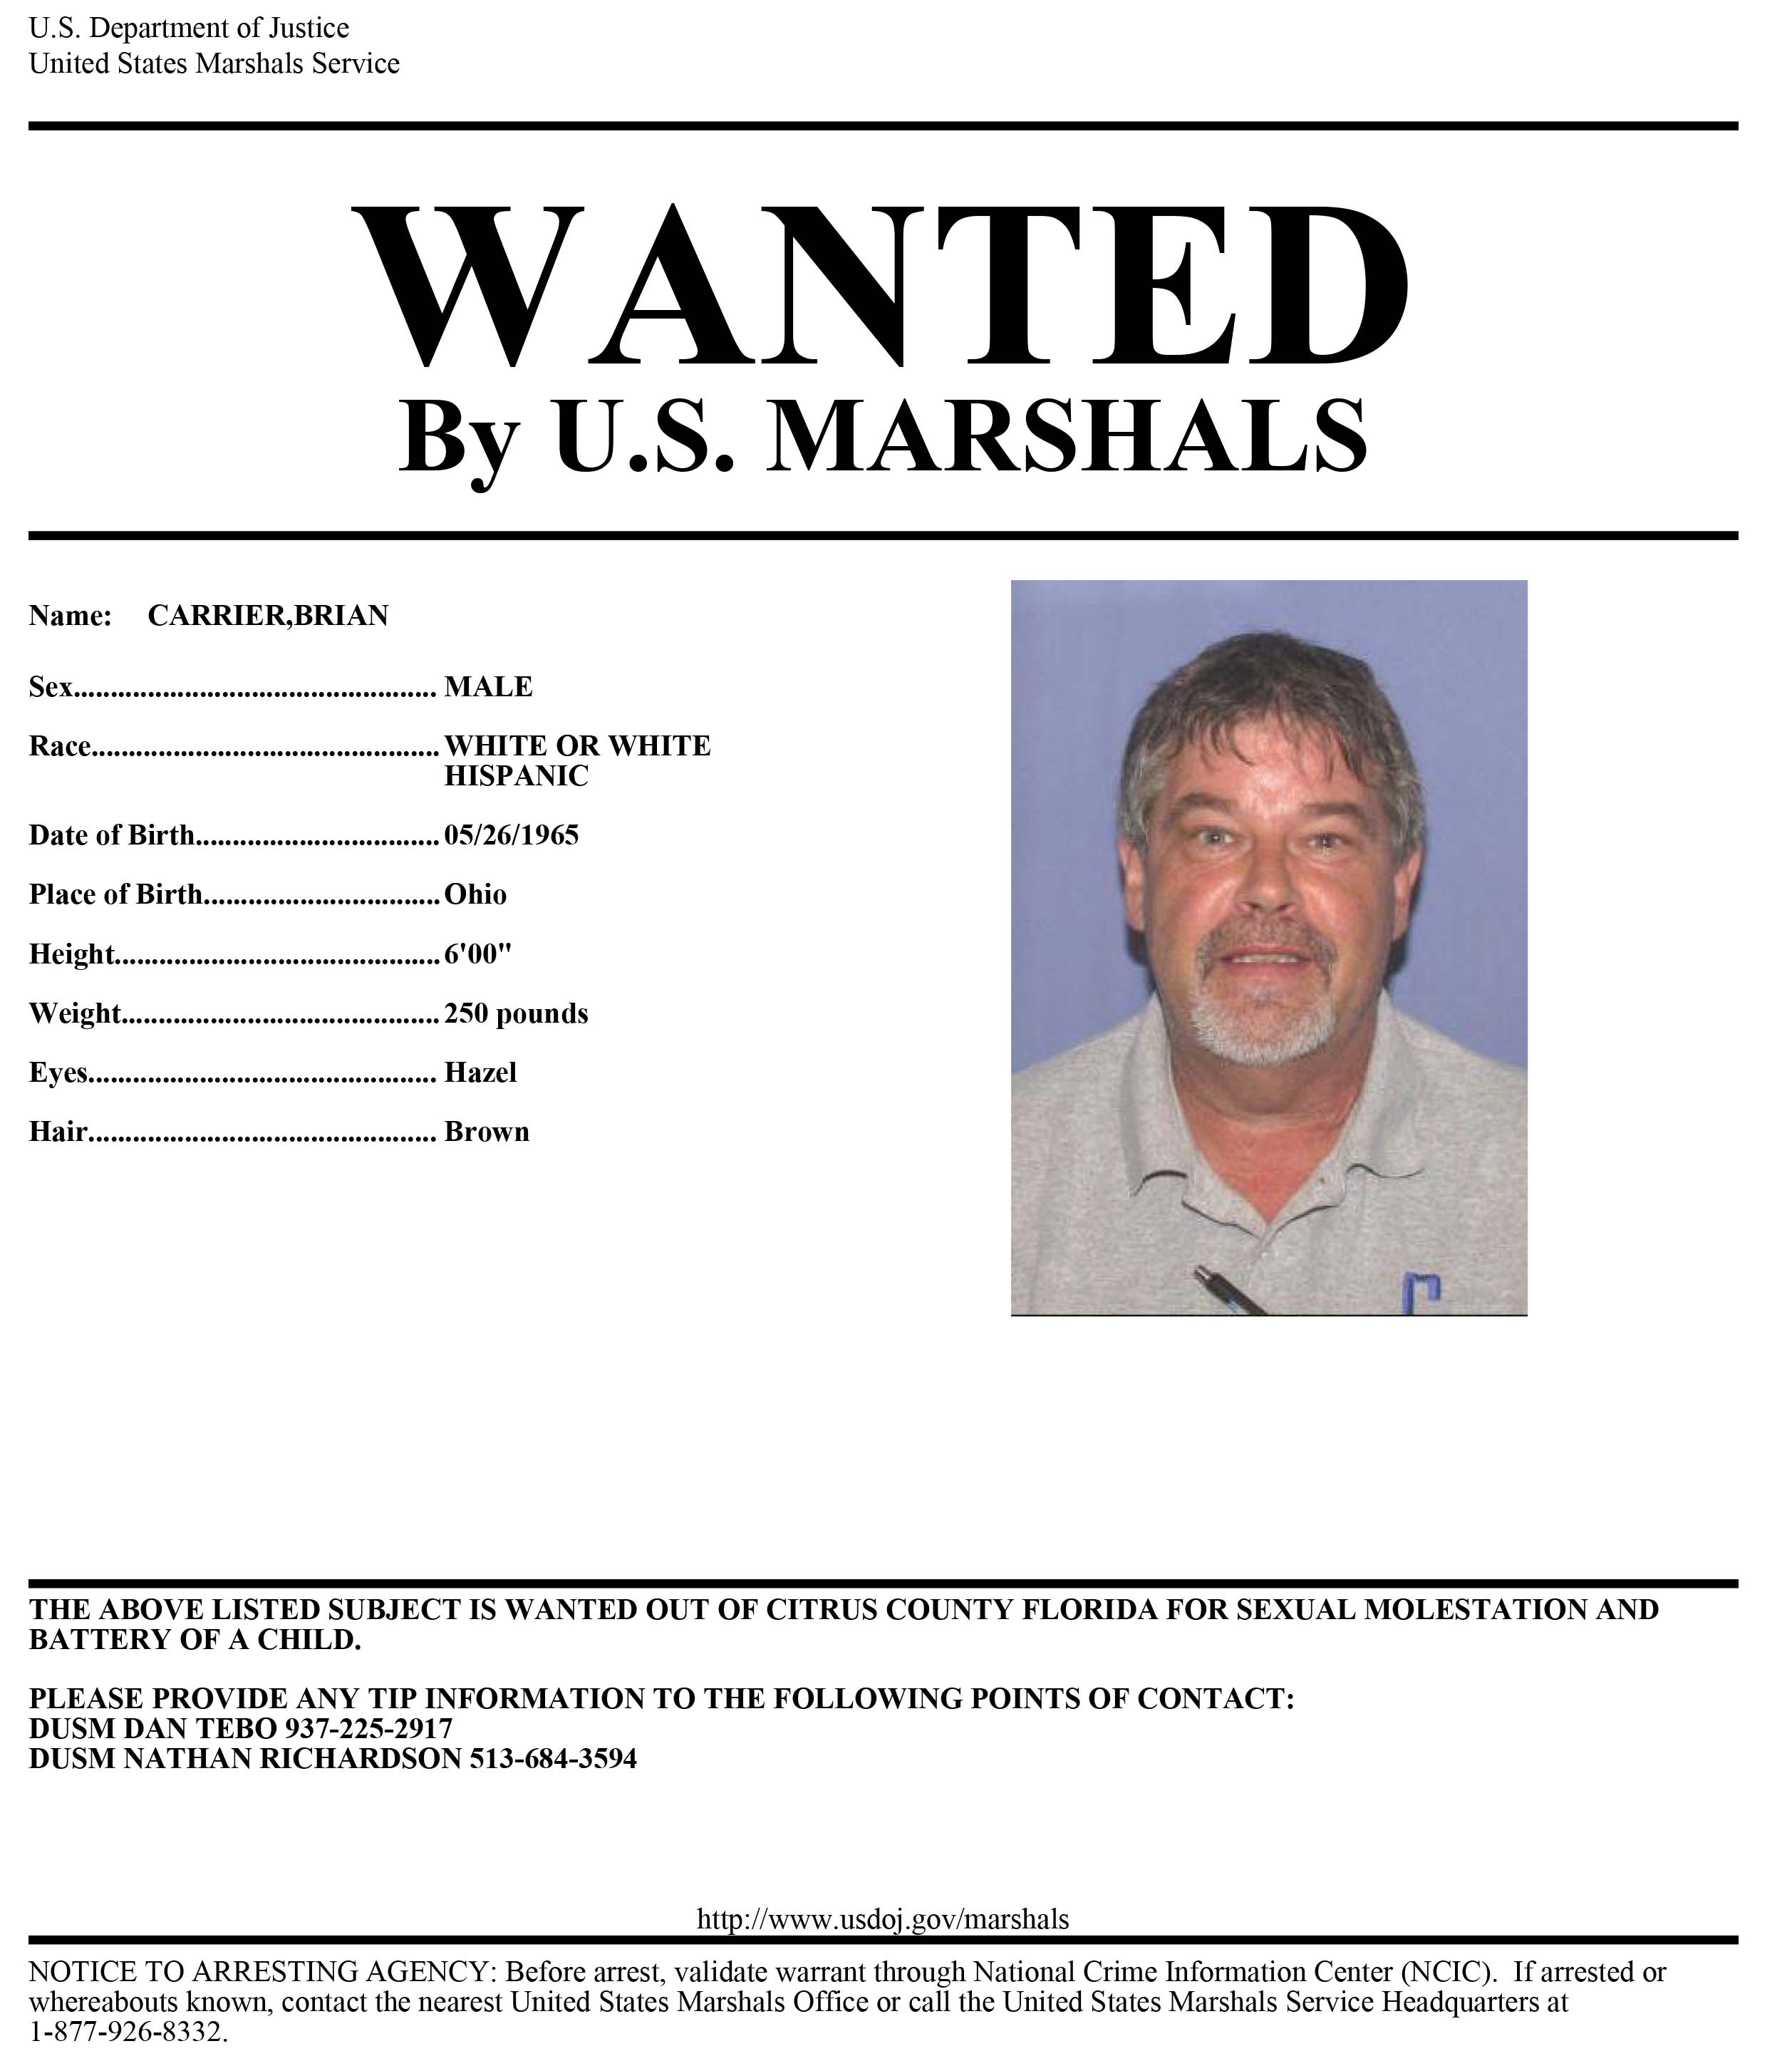 Man wanted for child molestation in Florida believed to be